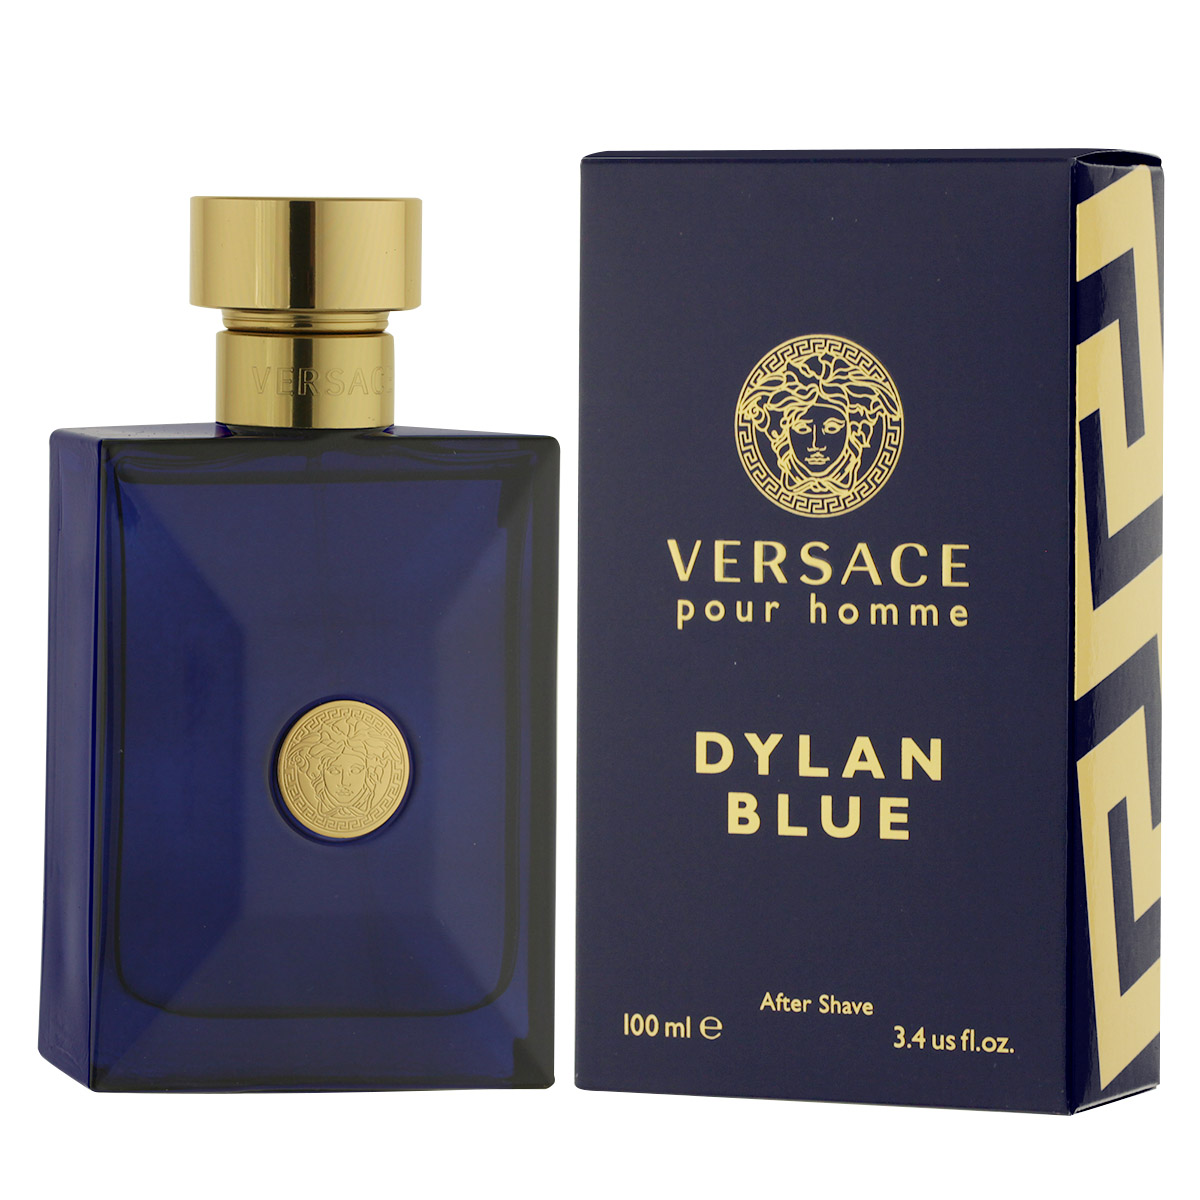 Versace Pour Homme Dylan Blue AS 100 ml M